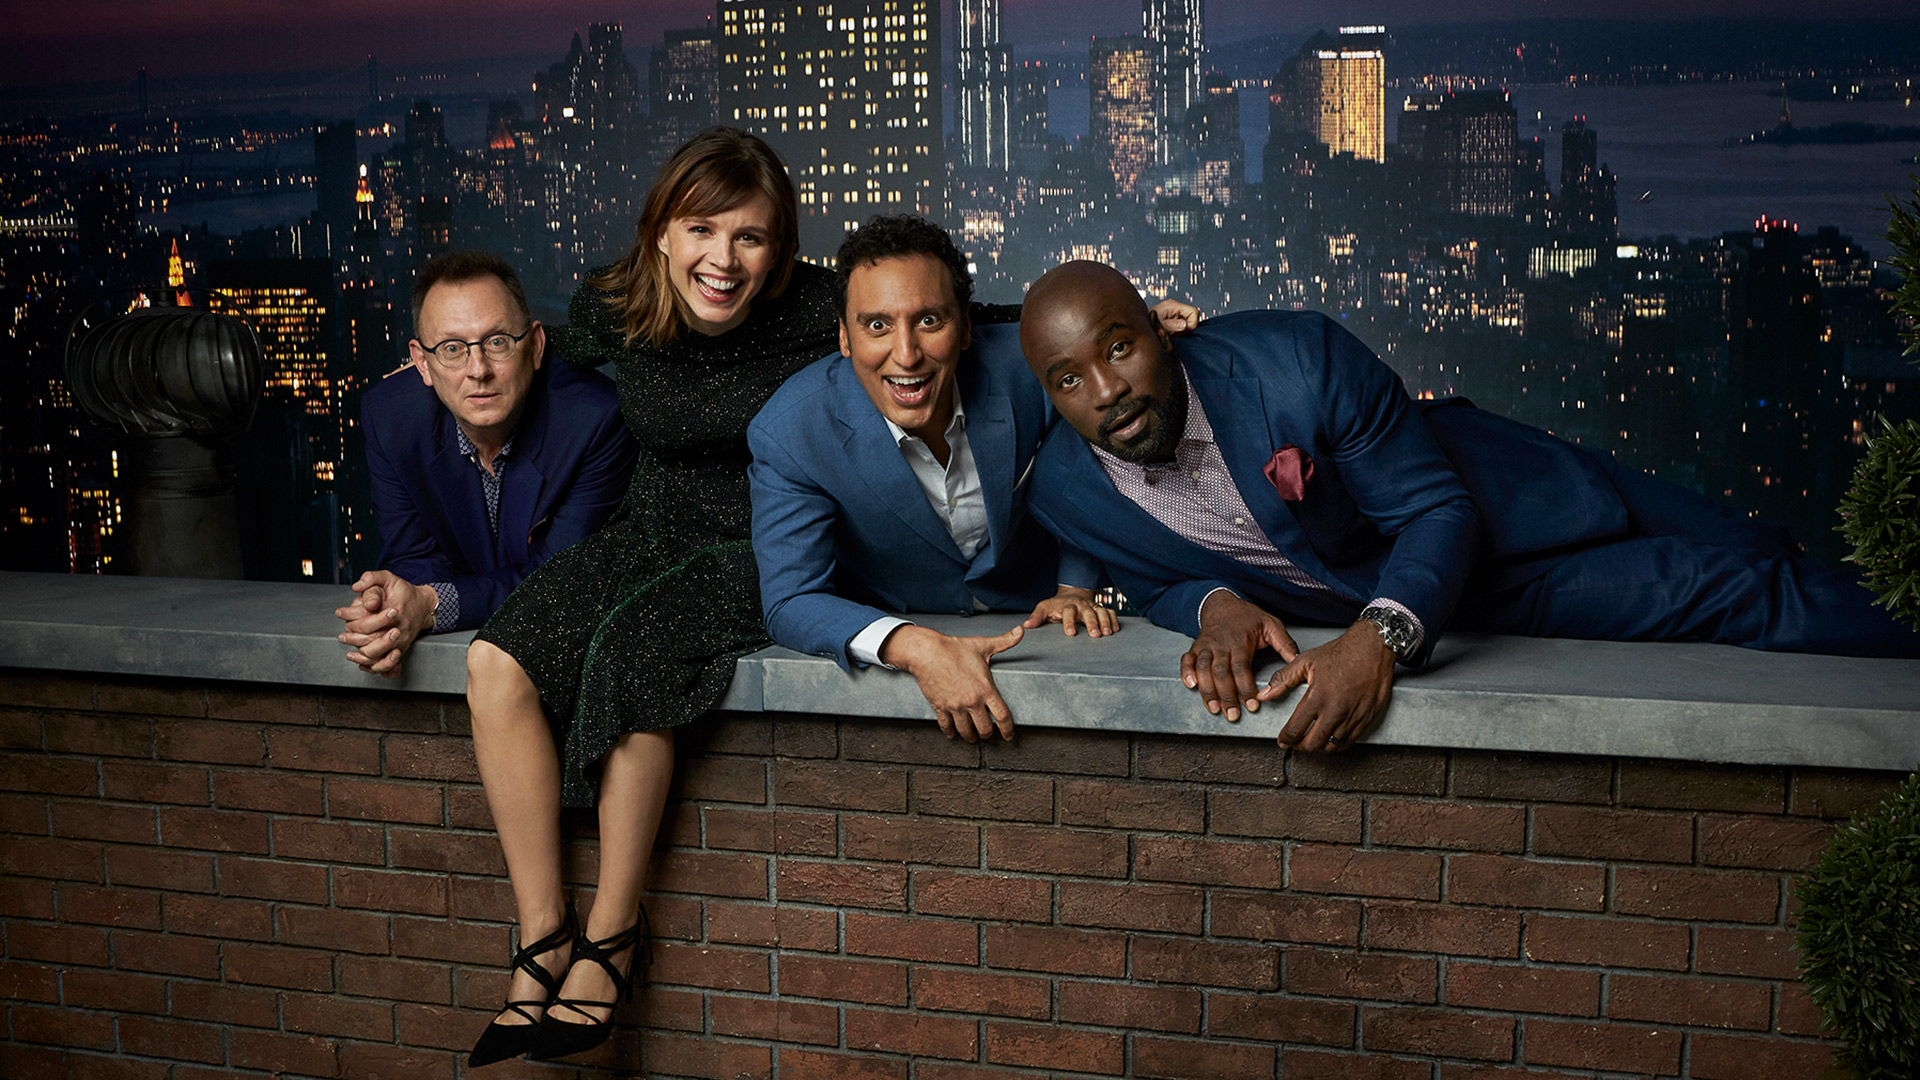 Michael Emerson, Katja Herbers, Aasif Mandvi, and Mike Colter